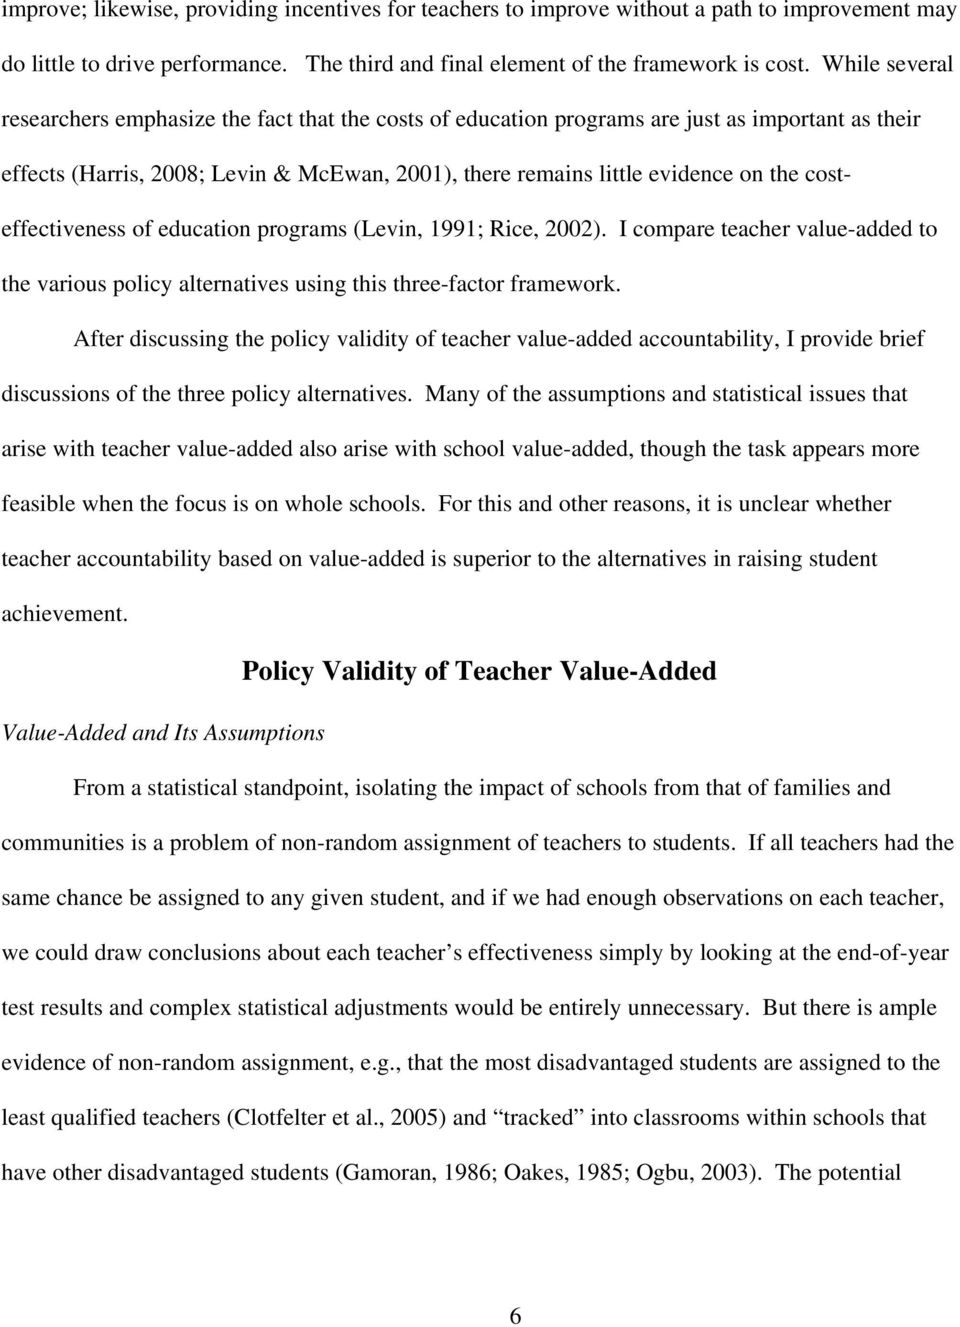 costeffectiveness of education programs (Levin, 1991; Rice, 2002). I compare teacher value-added to the various policy alternatives using this three-factor framework.